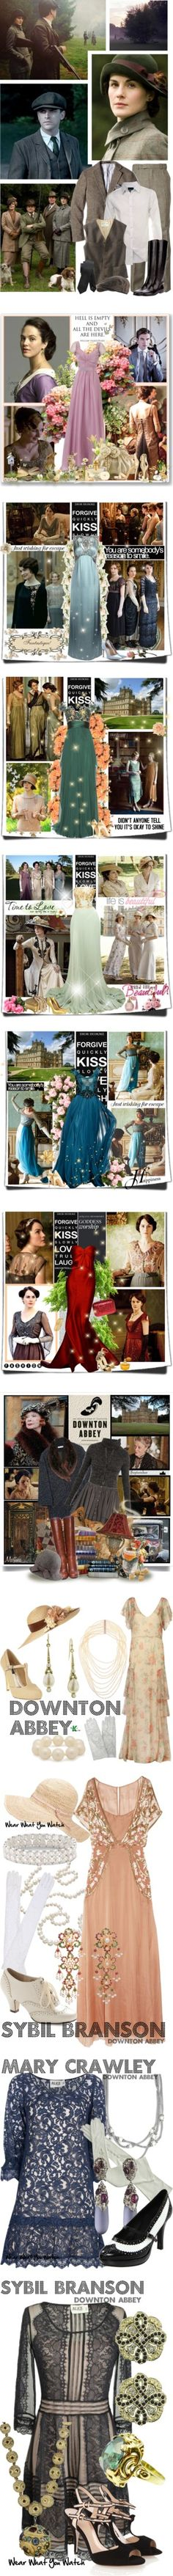 Favorite Downton Abbey Sets by weavingmaiden on Polyvore featuring мода, Ralph Lauren, Barbour, GANT, Burton, Tory Burch, Jacamo, Nanny State, TV and downtonabbey